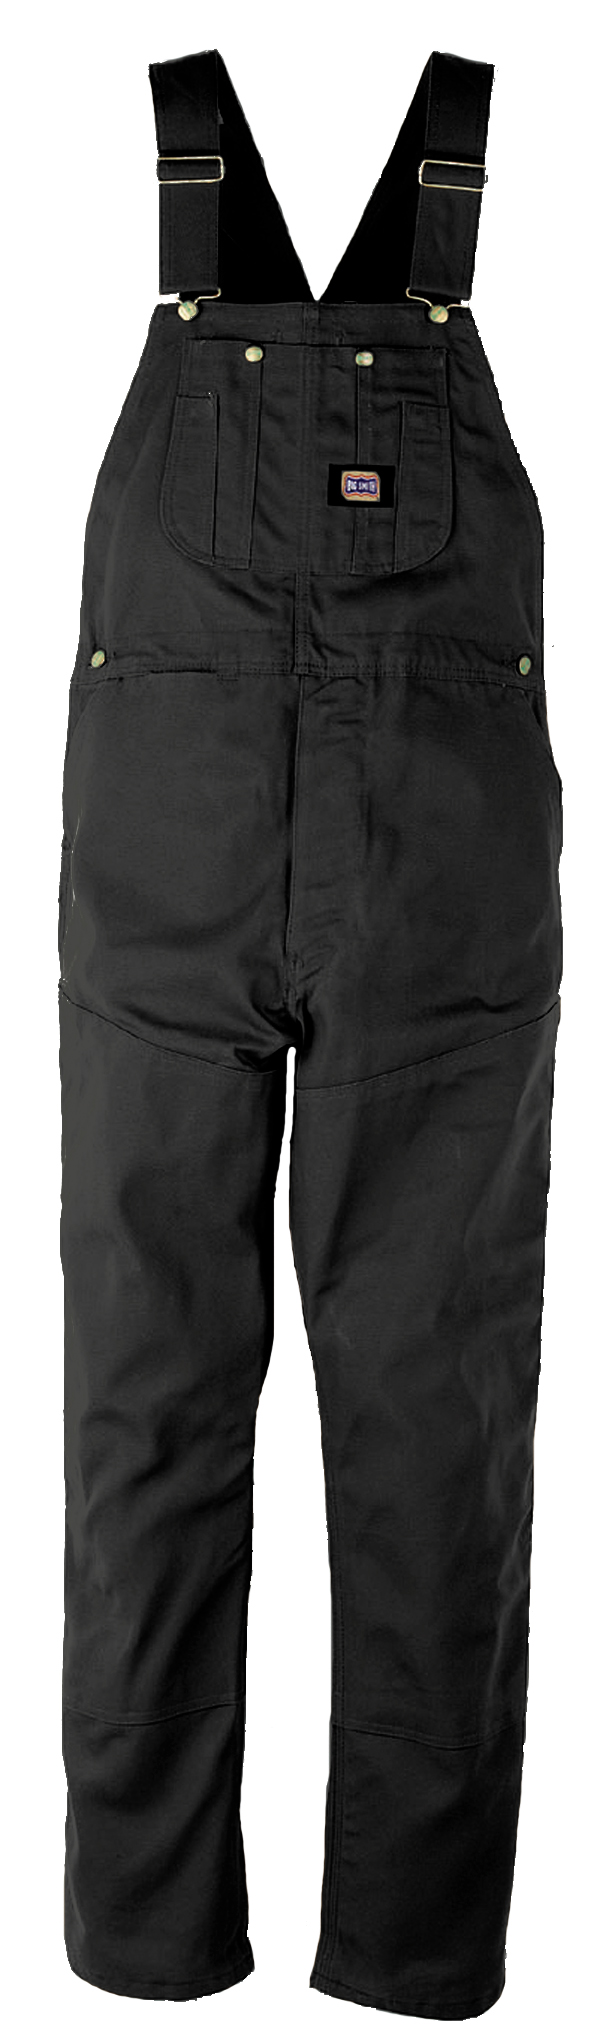 Walls Big Smith B94023 Zip Fly Washed Duck Bib Overalls at Sears.com